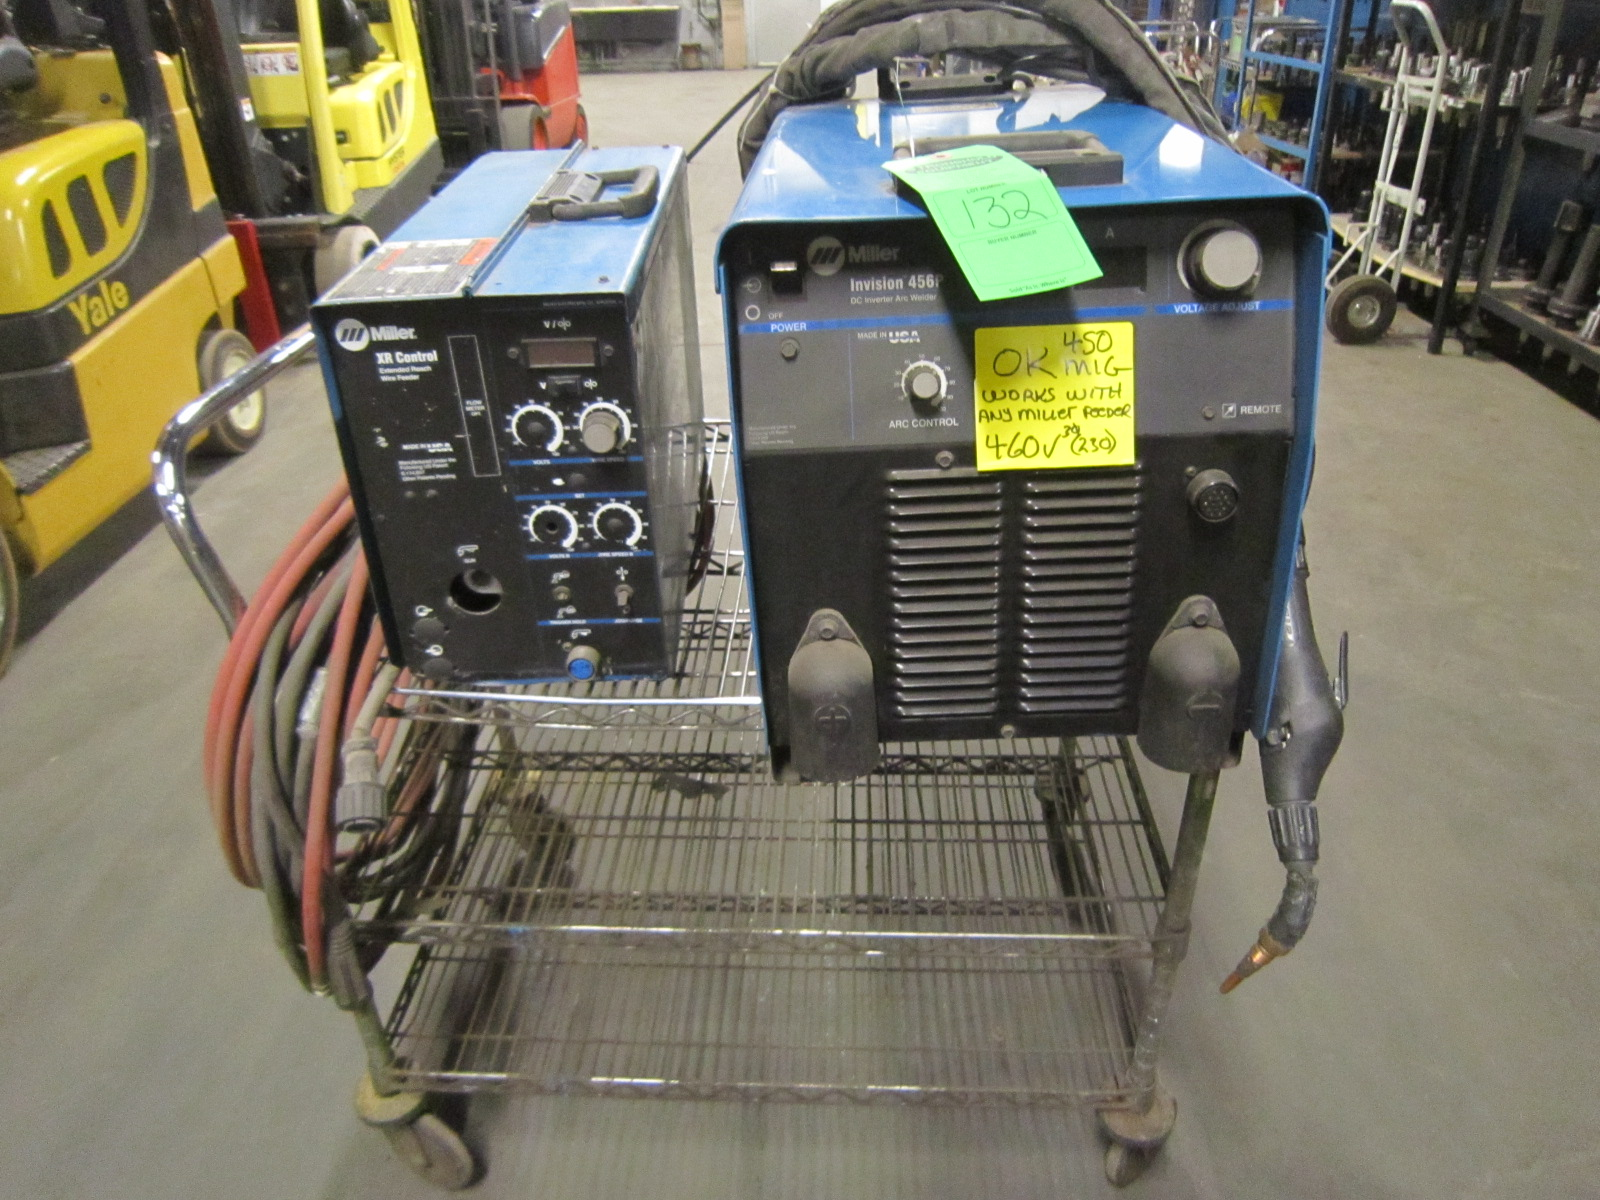 Miller Invision 456P Mig Welder with XR control push/pull wire ...